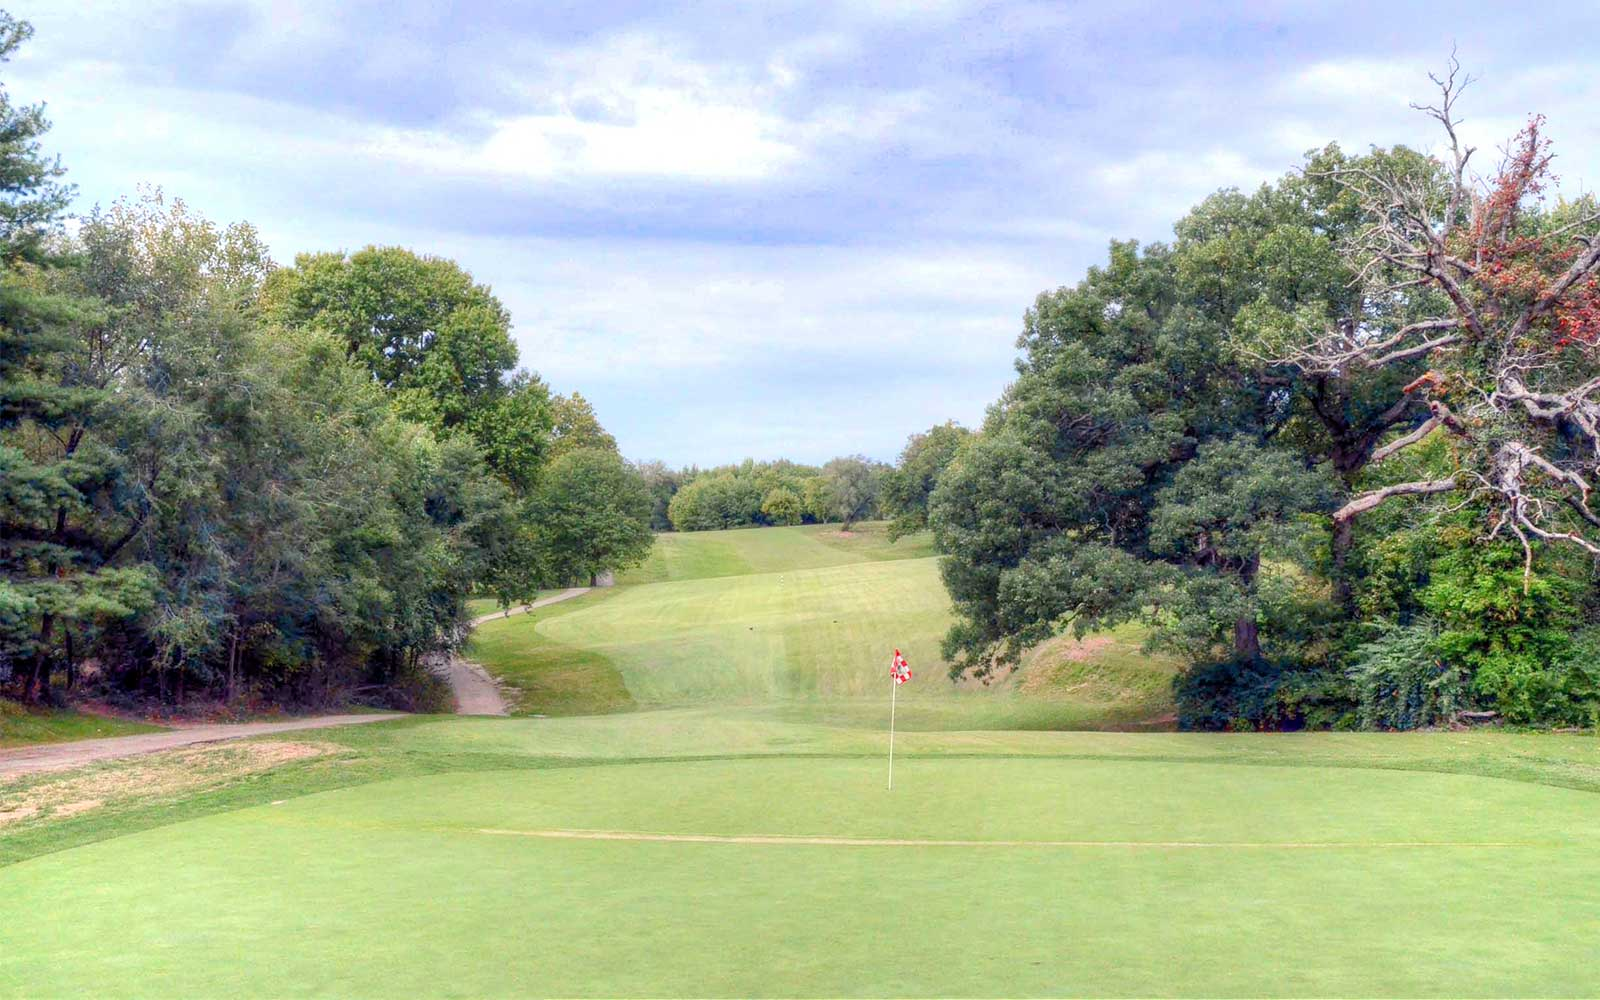 Normandie-Golf-Club,-St-Louis,-MO-Green